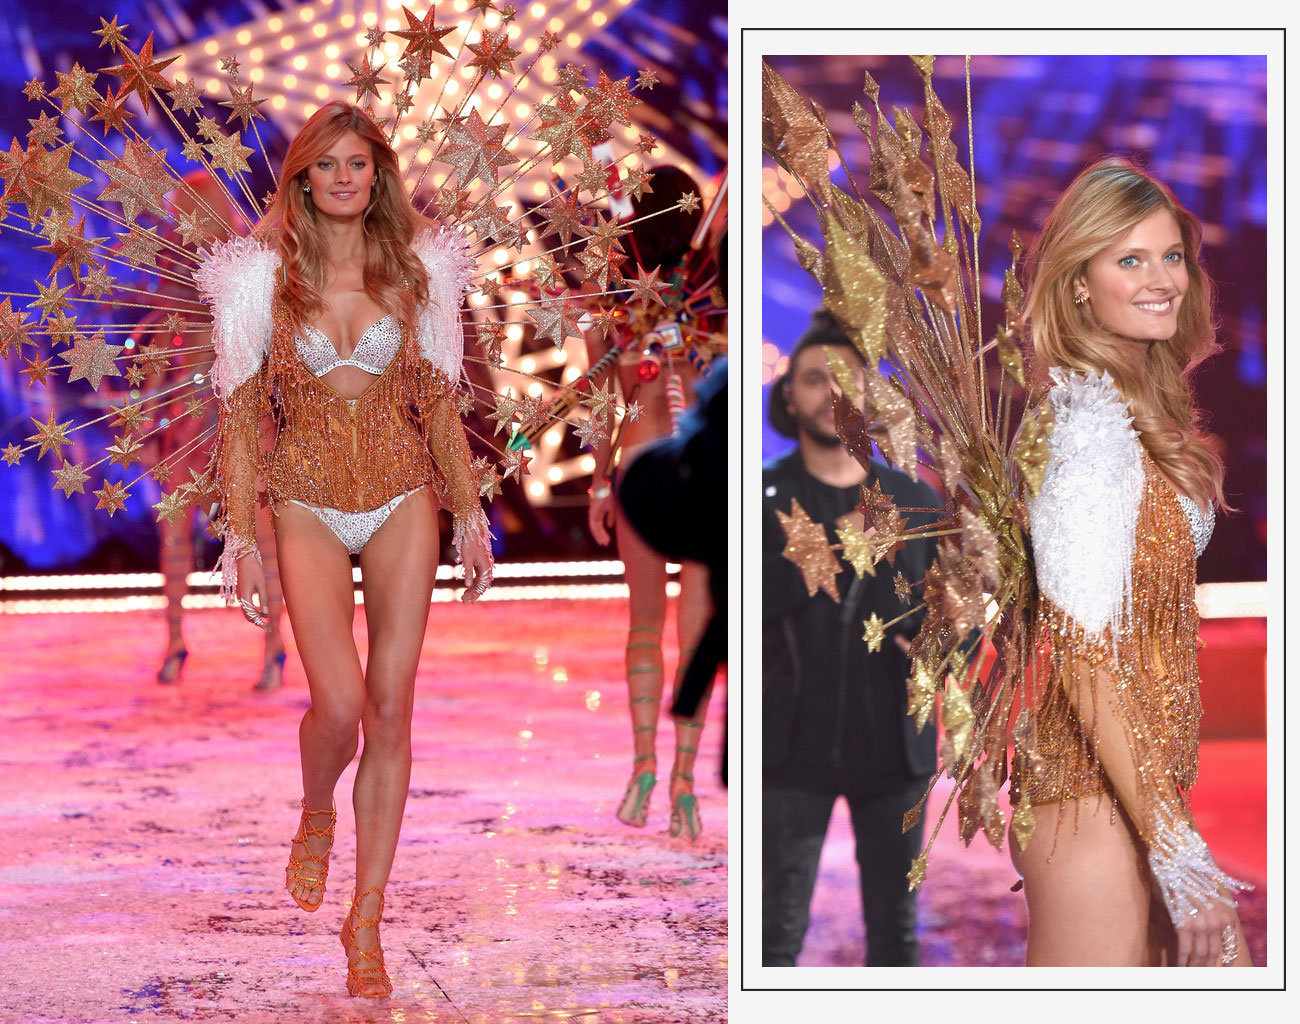 Victorias Secret 2015 fashion show Constance Jablonski gold wings